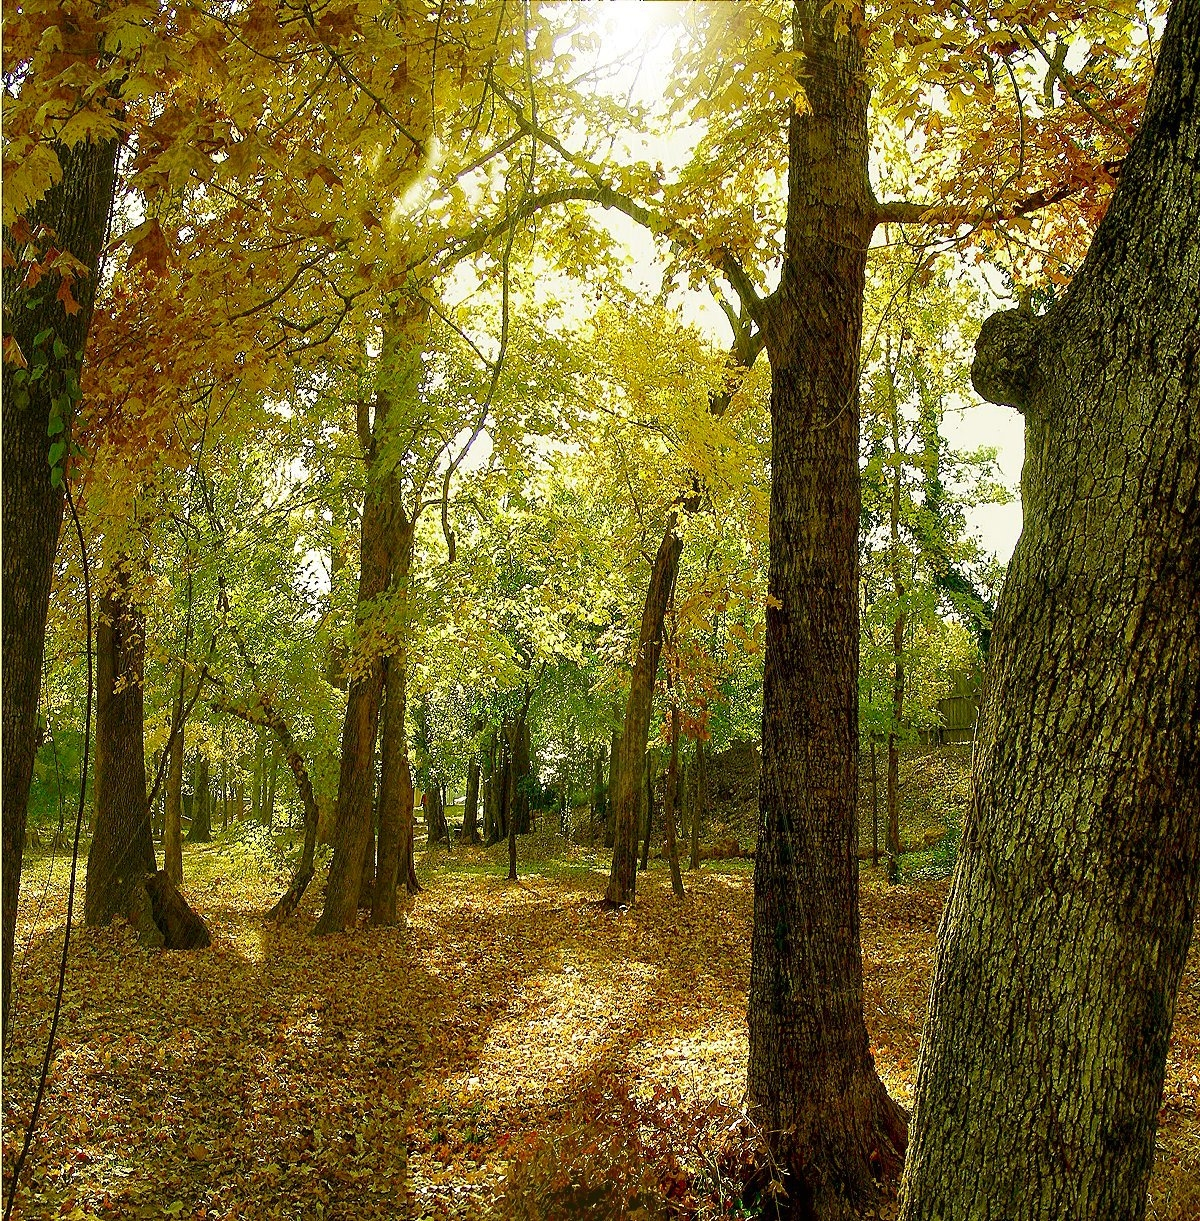 Autumn Woodland in Margil Park on La Nana Creek Trail